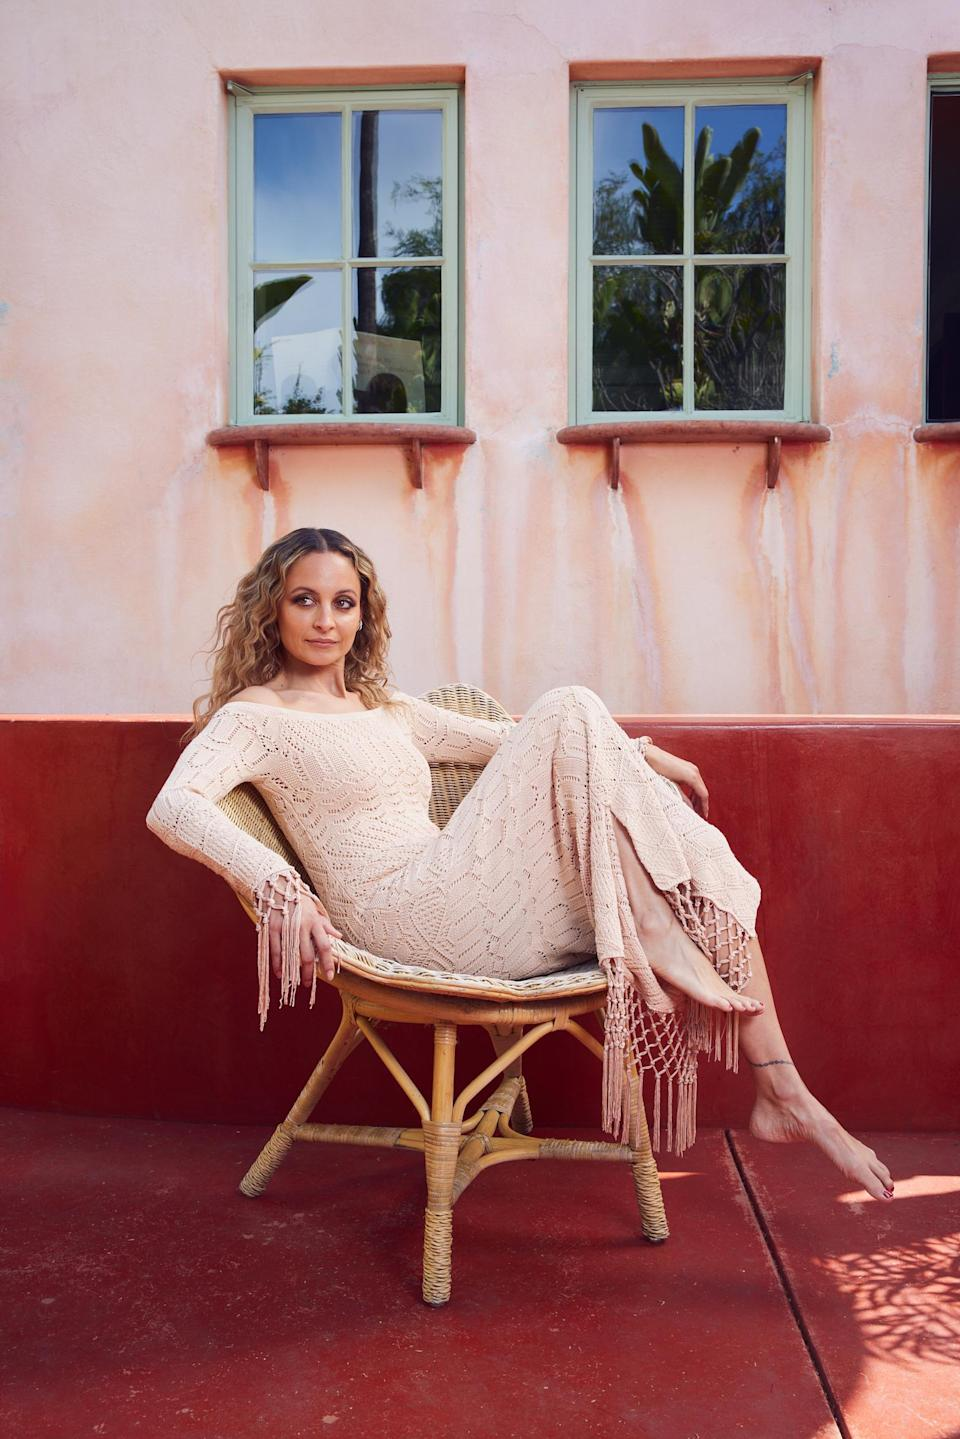 Nicole Richie's House of Harlow will participate in Revolve Gallery. - Credit: Courtesy of Revolve